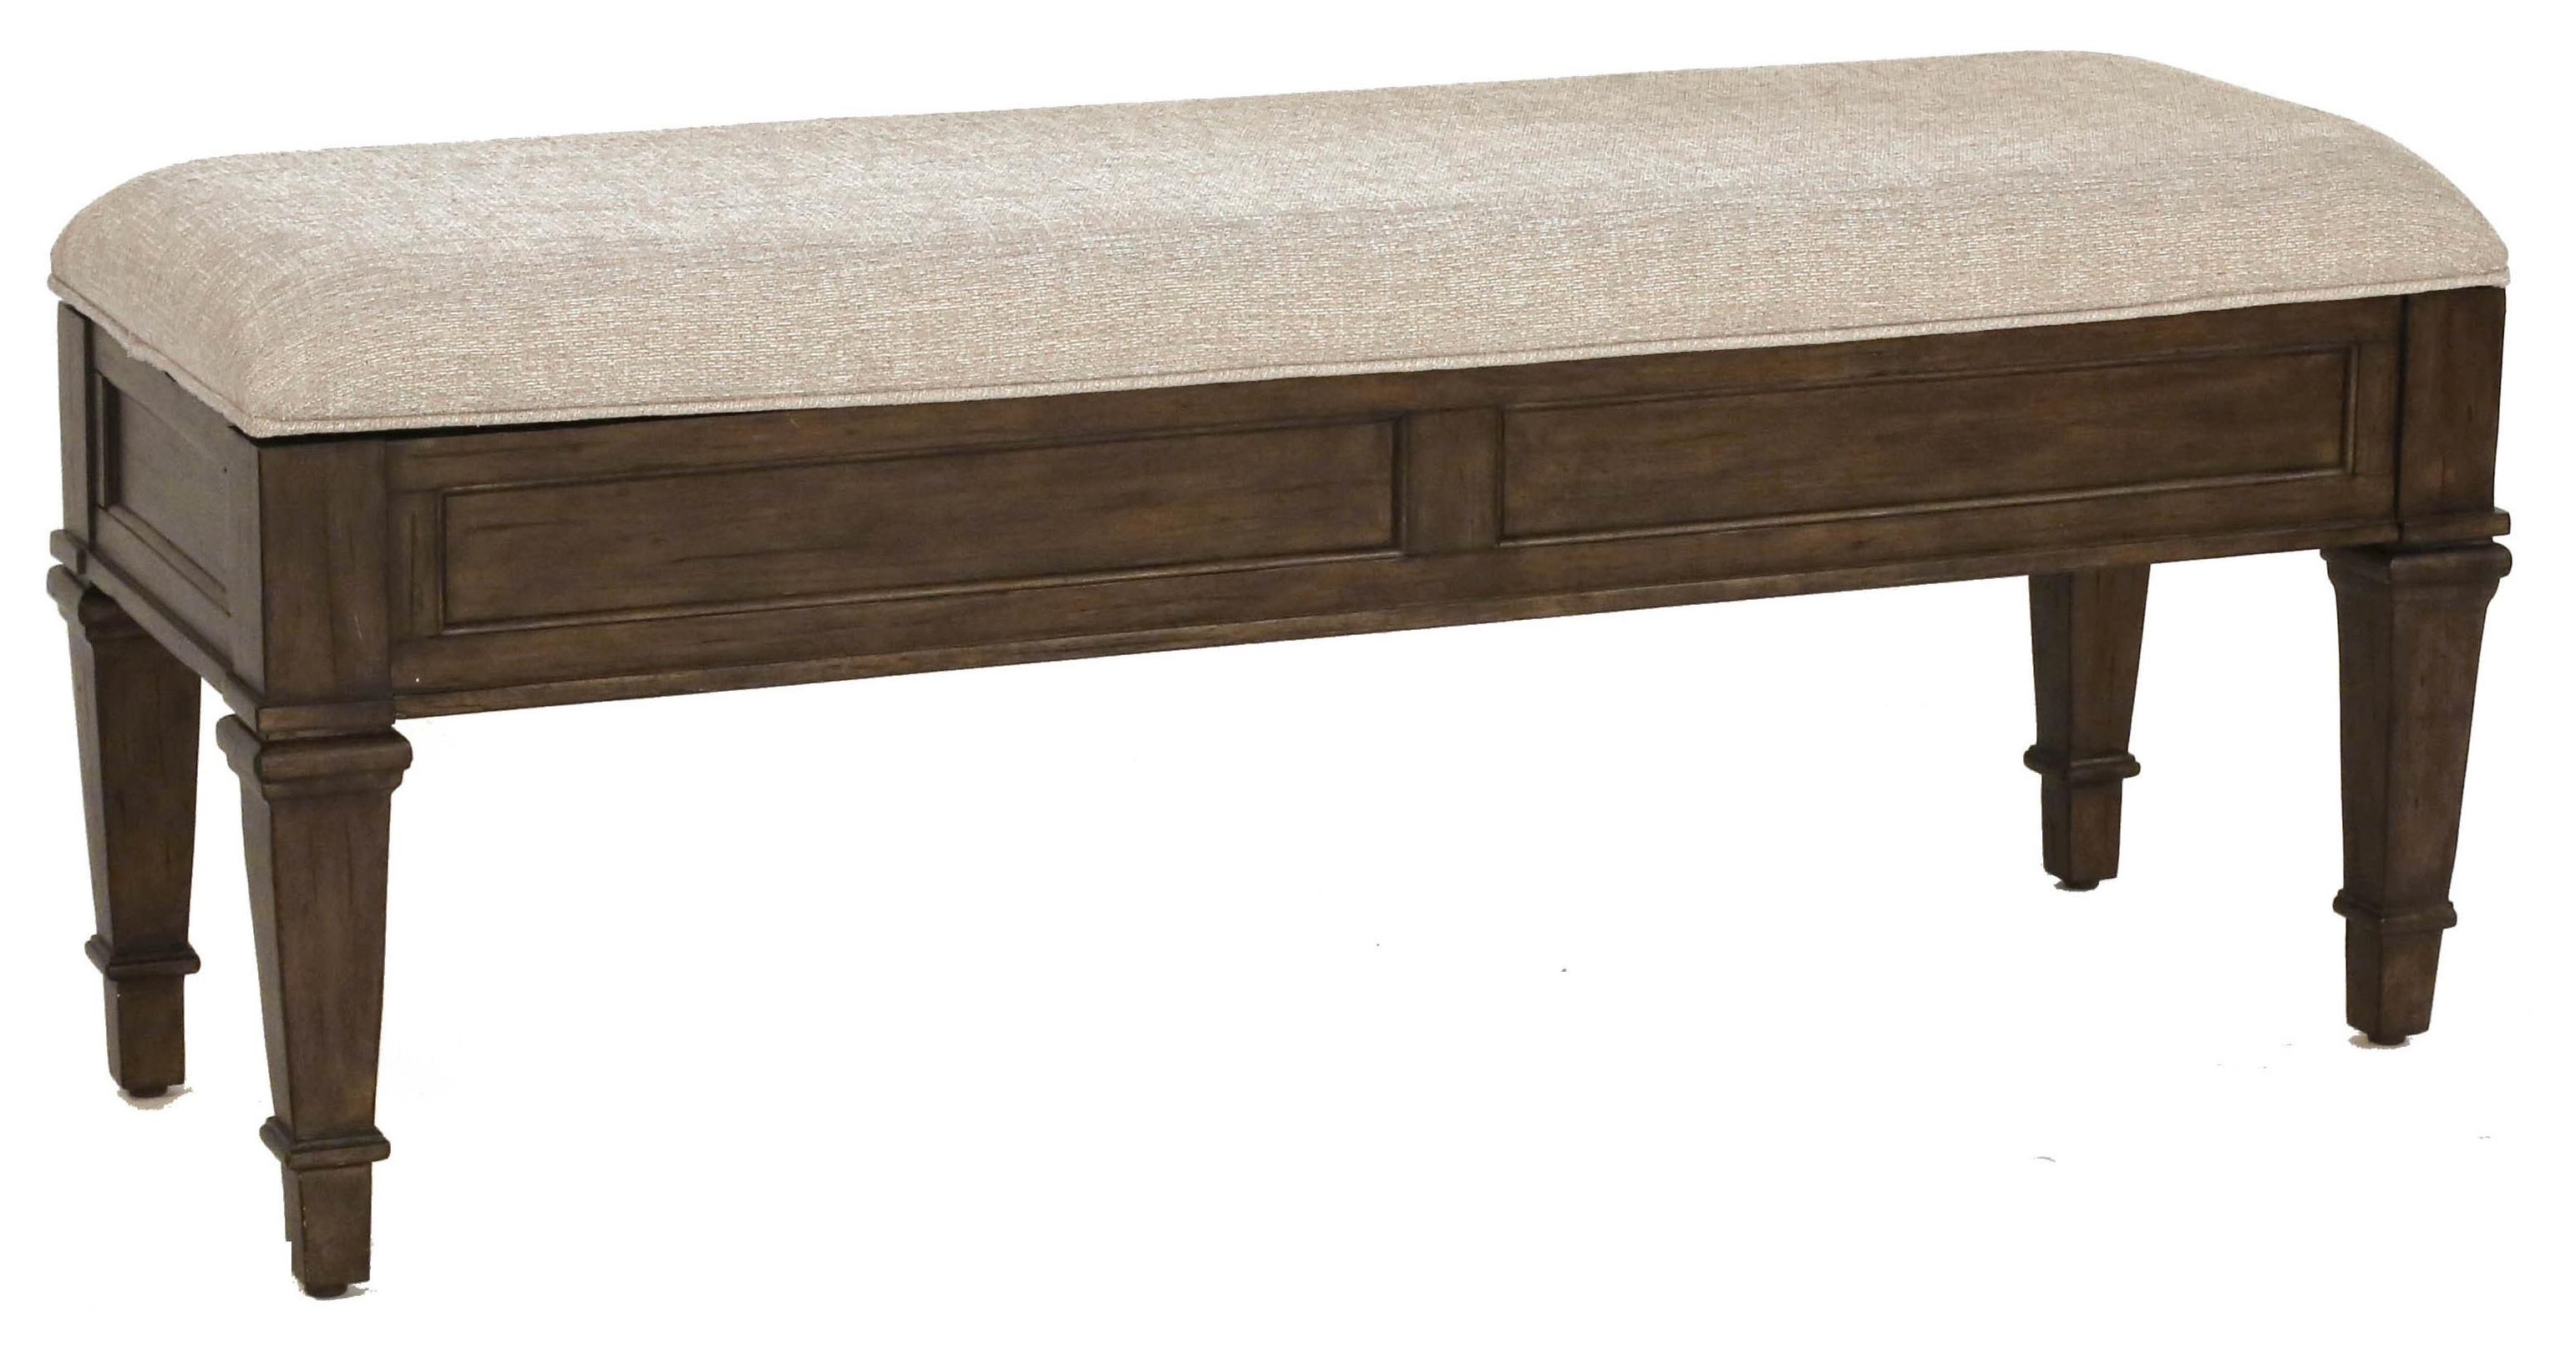 Gracious Piano Hinge By Upholstered Storage Bench Ottoman Upholstered Storage Bench Ireland Solid Mahogany Upholstered Storage Bench Piano Hinge Solid Mahogany Upholstered Storage Bench houzz 01 Upholstered Storage Bench